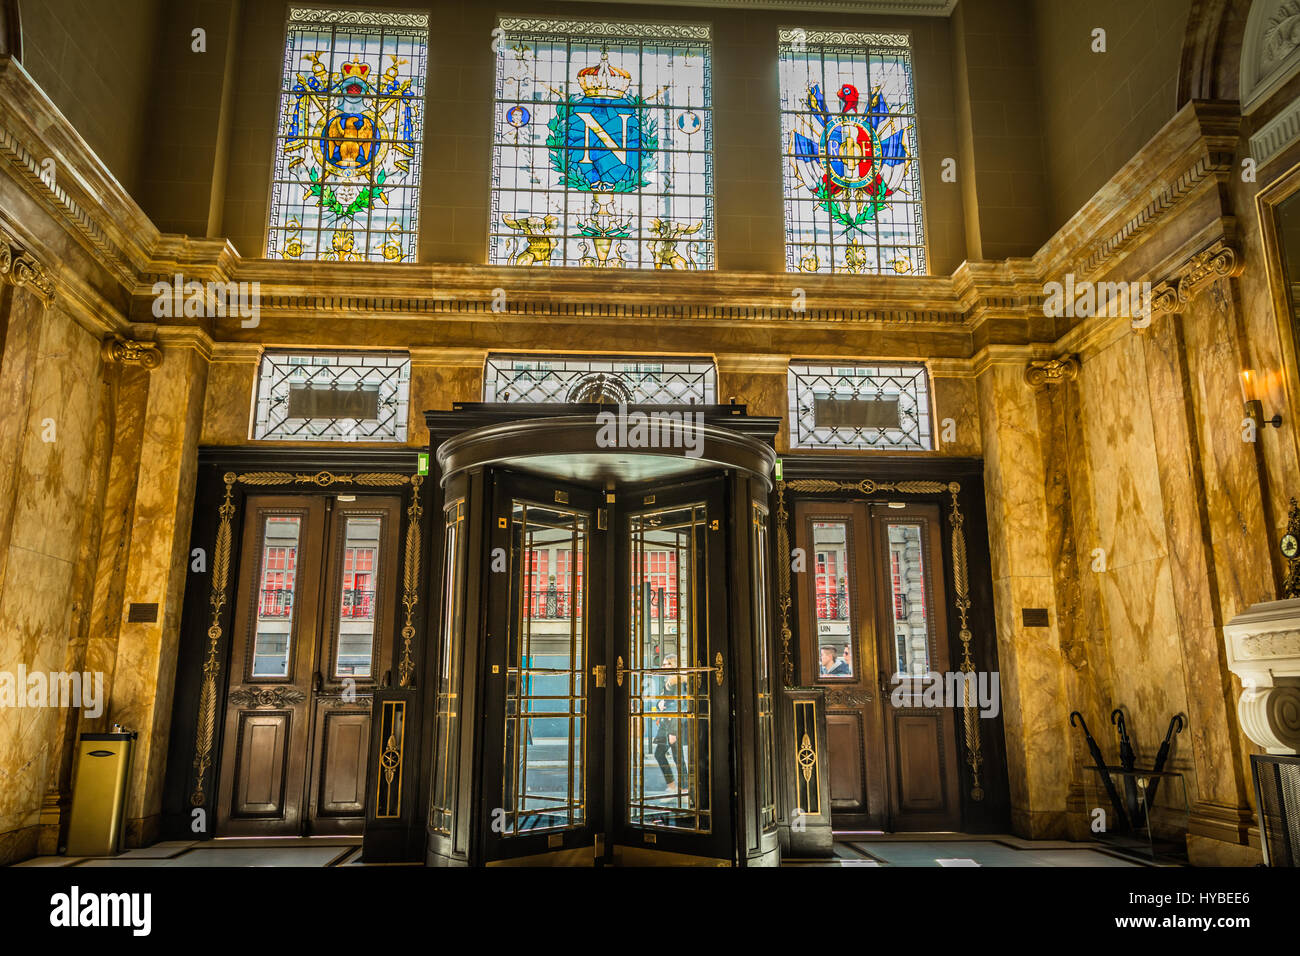 The entrance and foyer to Hotel Café Royal on Regent Street, Piccadilly, London, UK - Stock Image